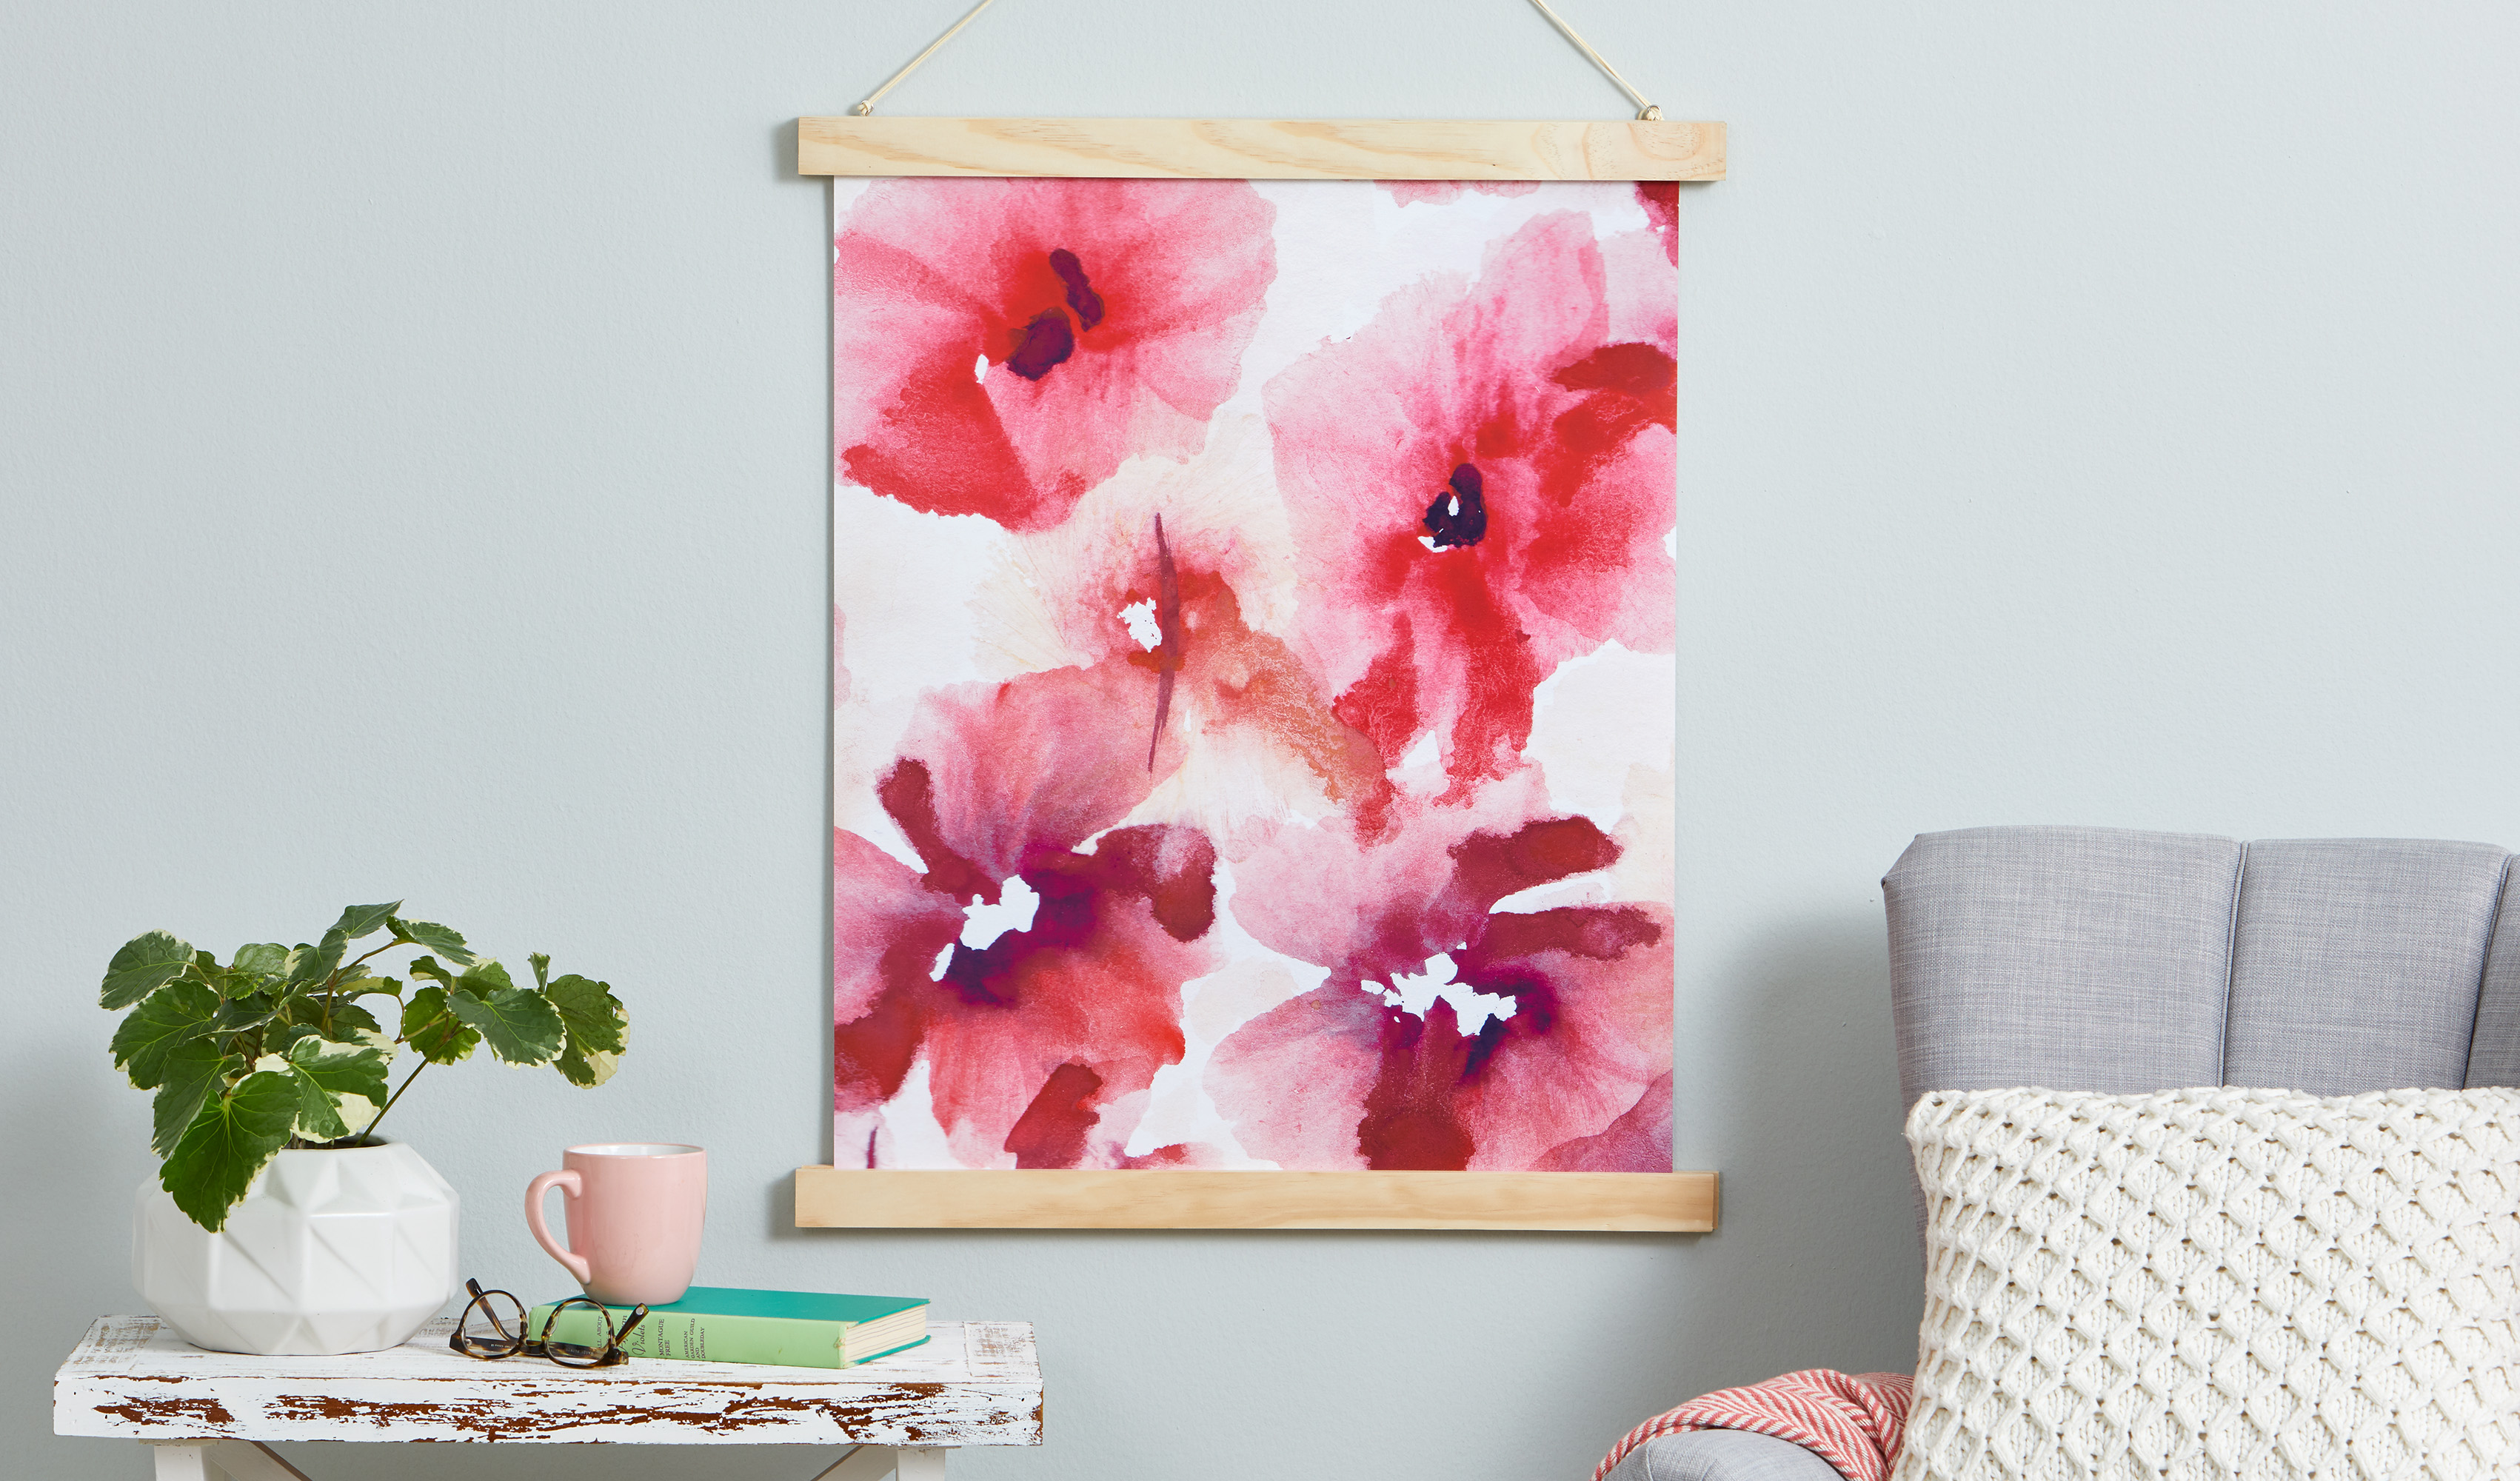 poster holder holding pink floral poster close-up